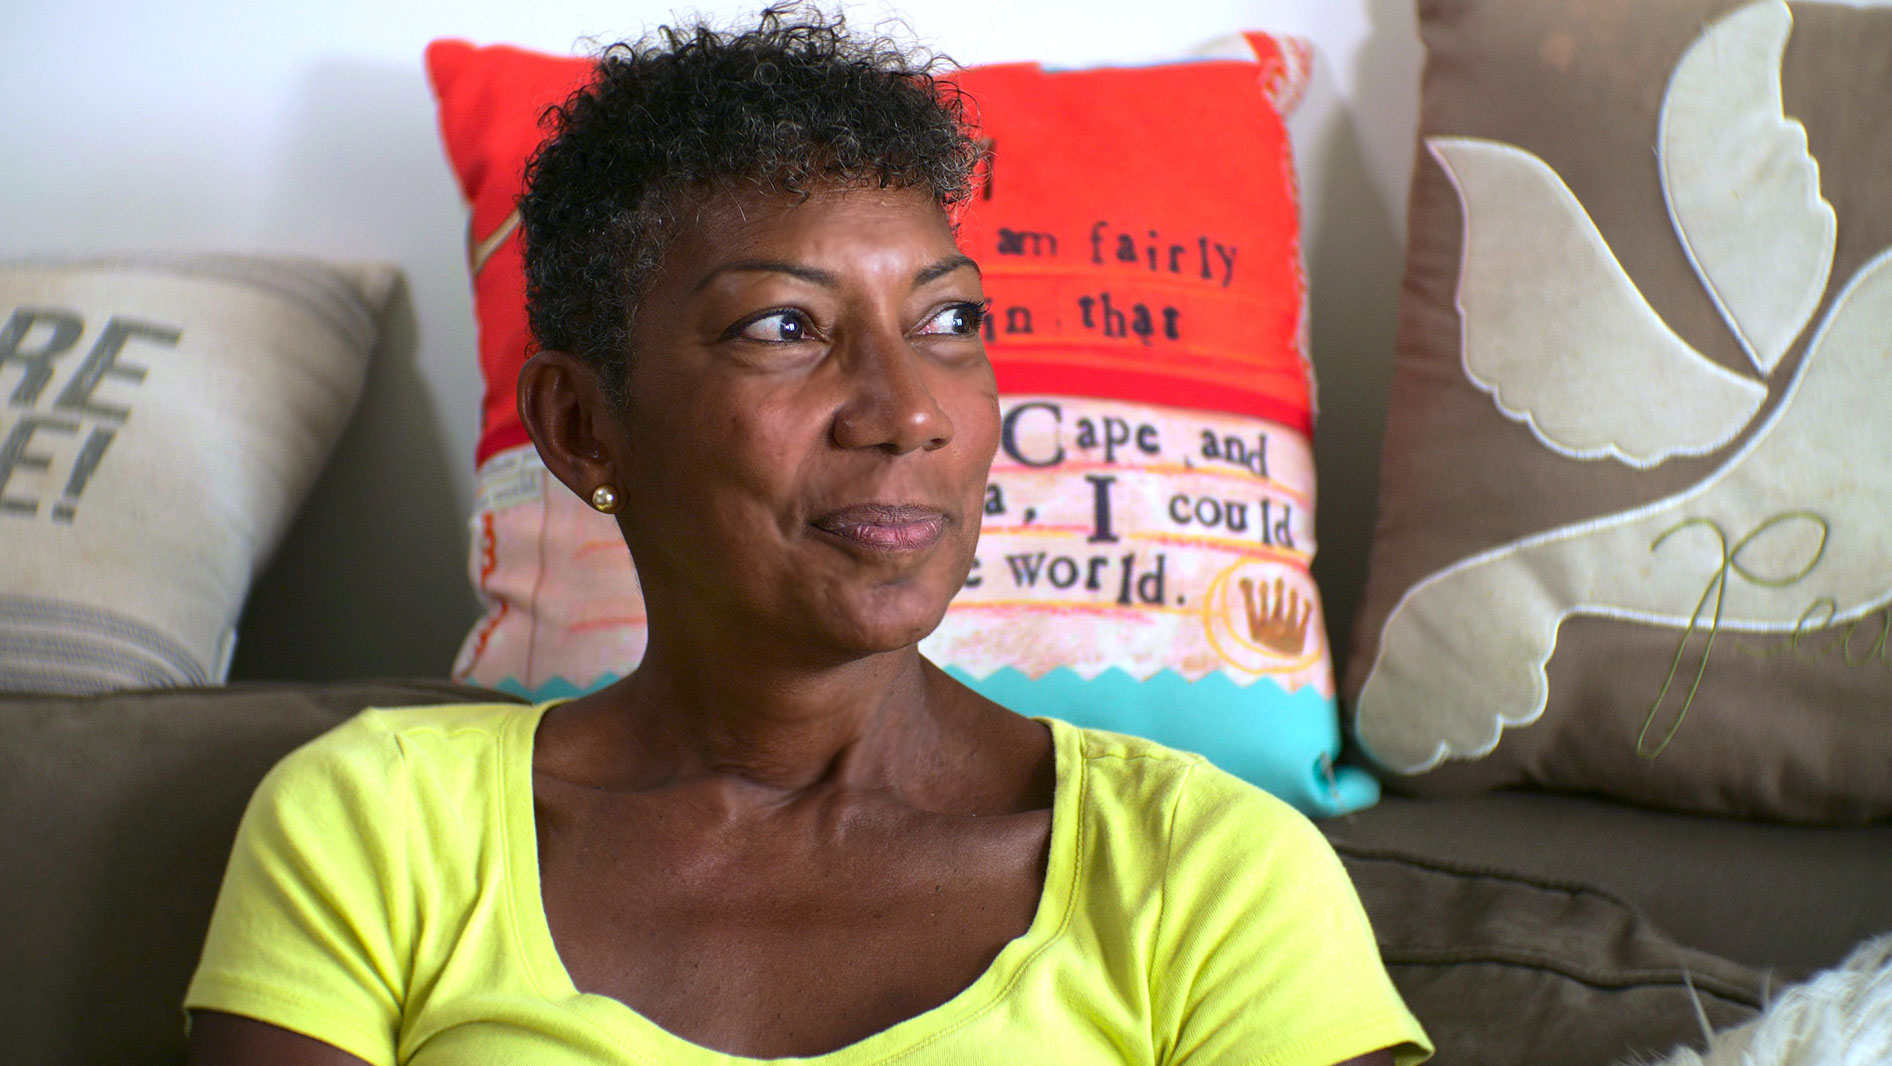 A Black woman in a yellow tshirt sits in front of a colorful pillow looking to the right.